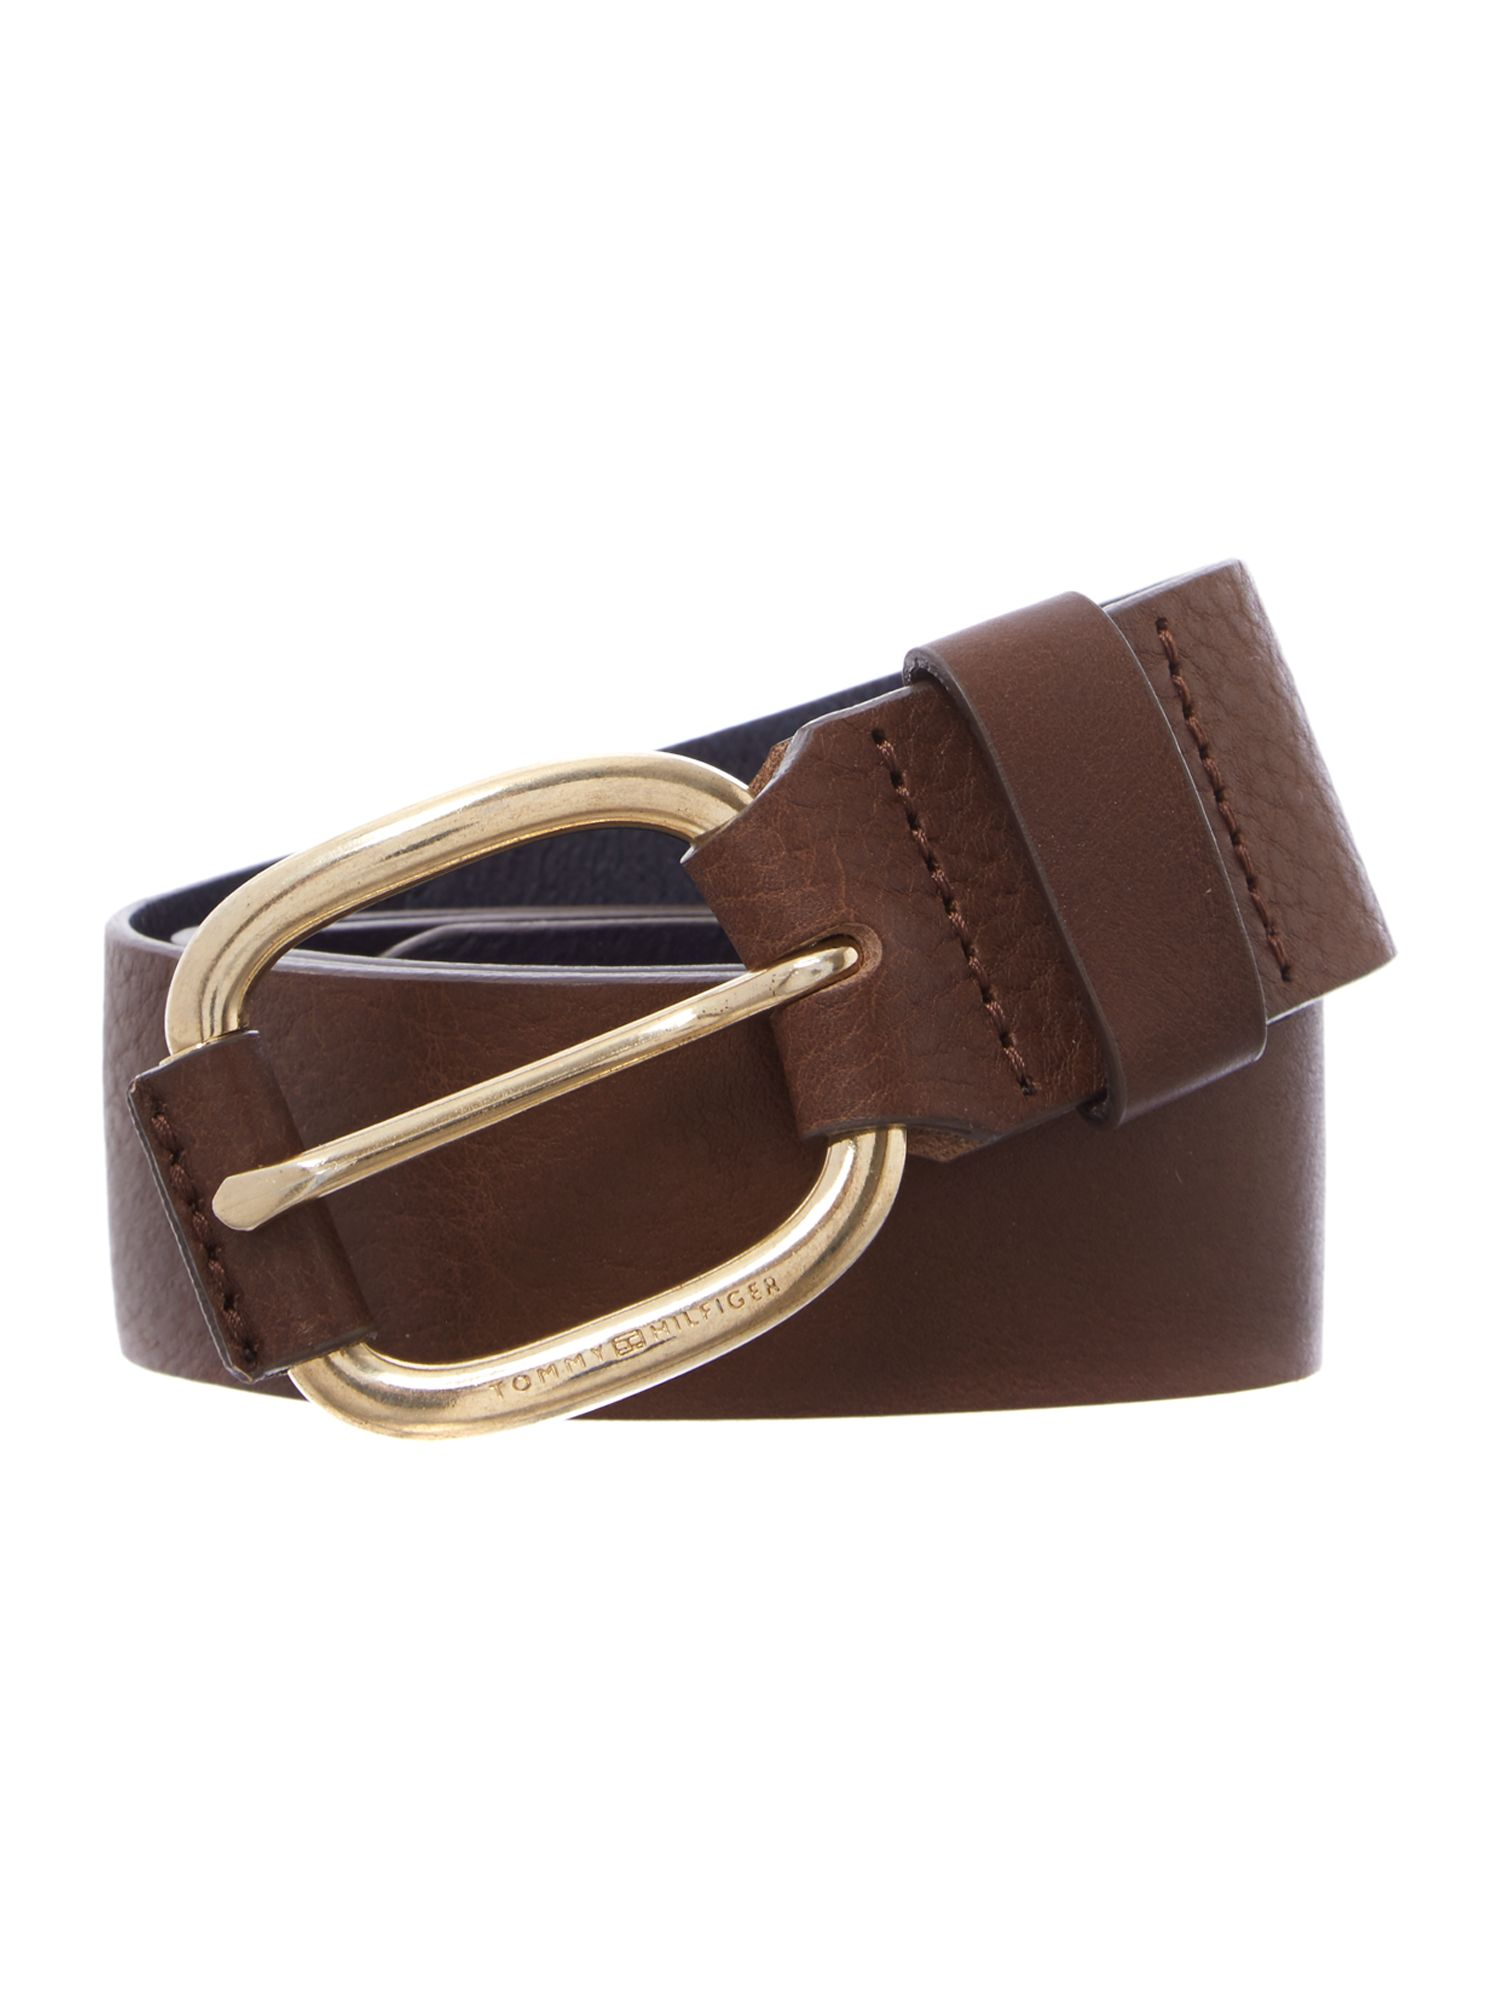 Whitney brown jeans belt